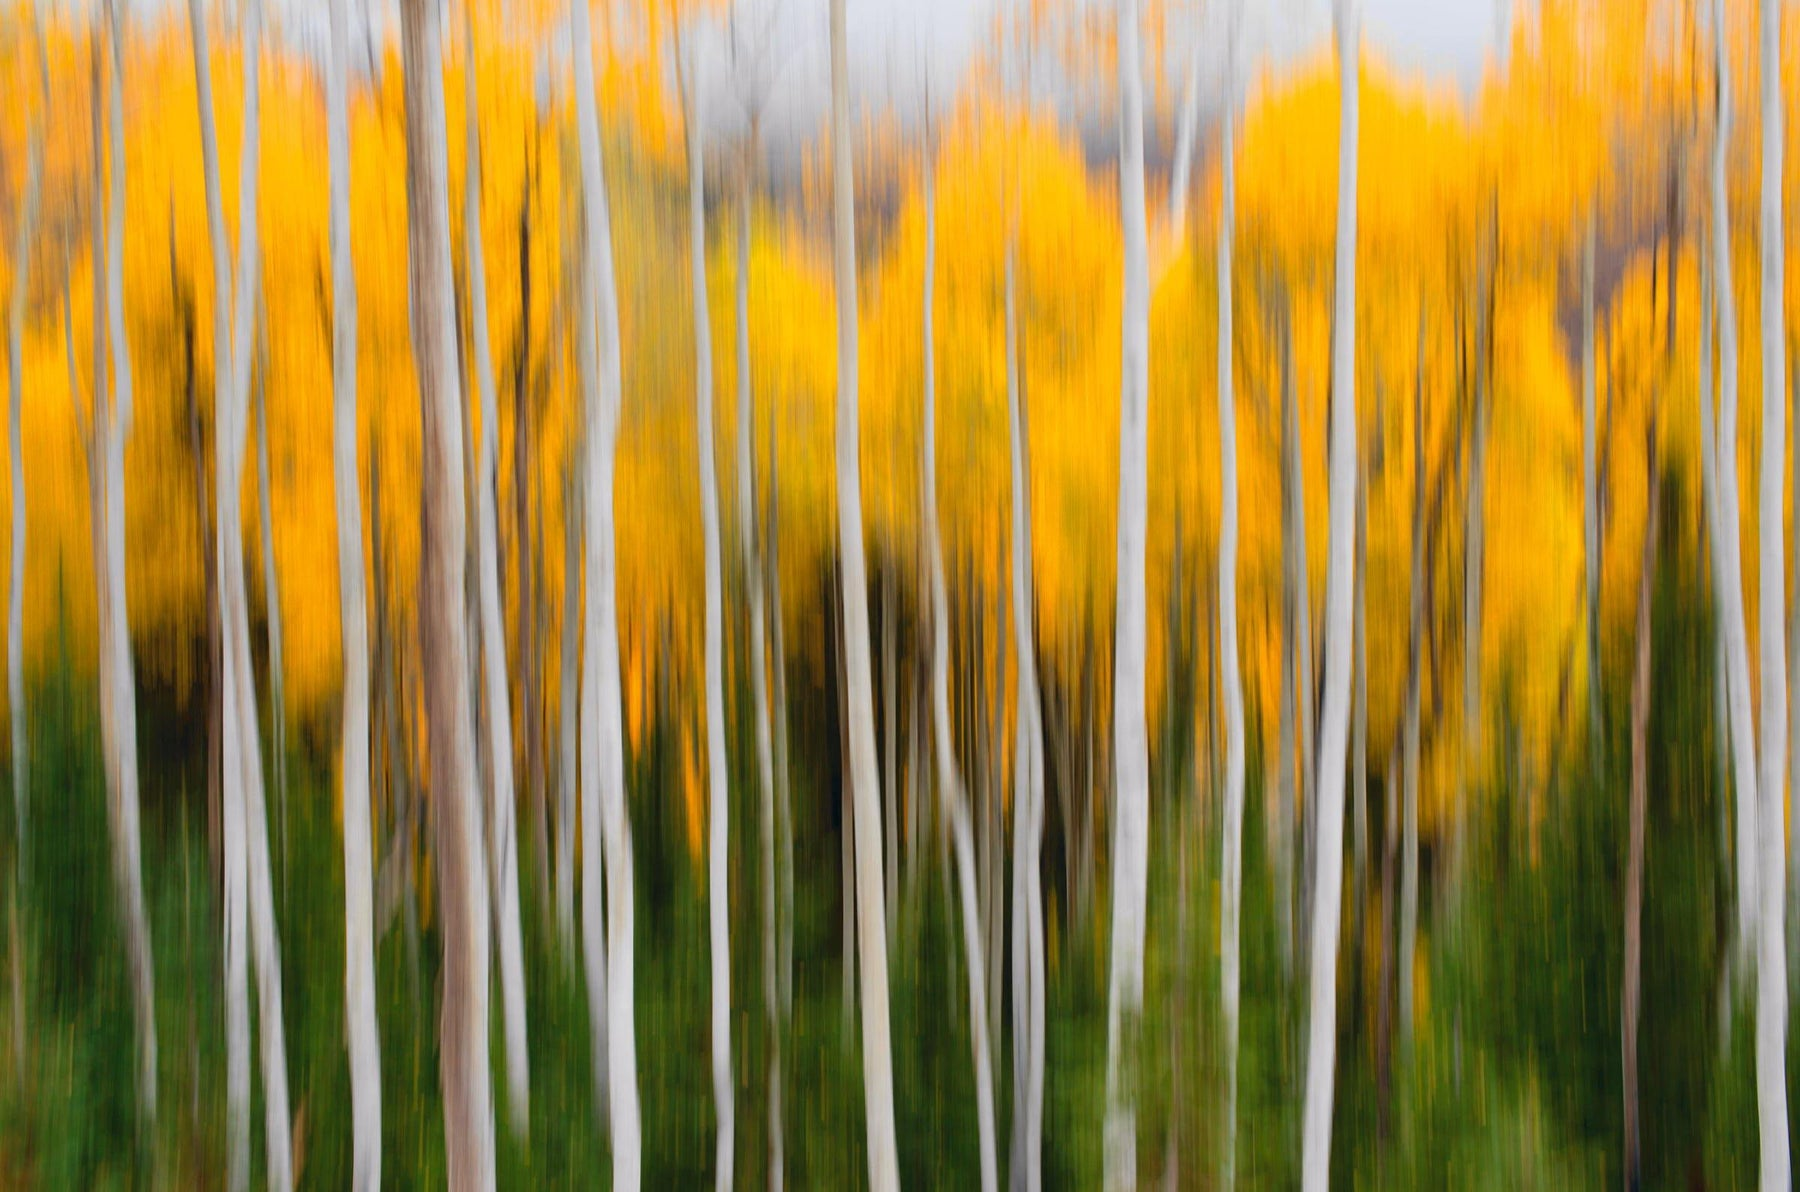 Blurred yellow and white forest with green grass foreground in Aspen Colorado